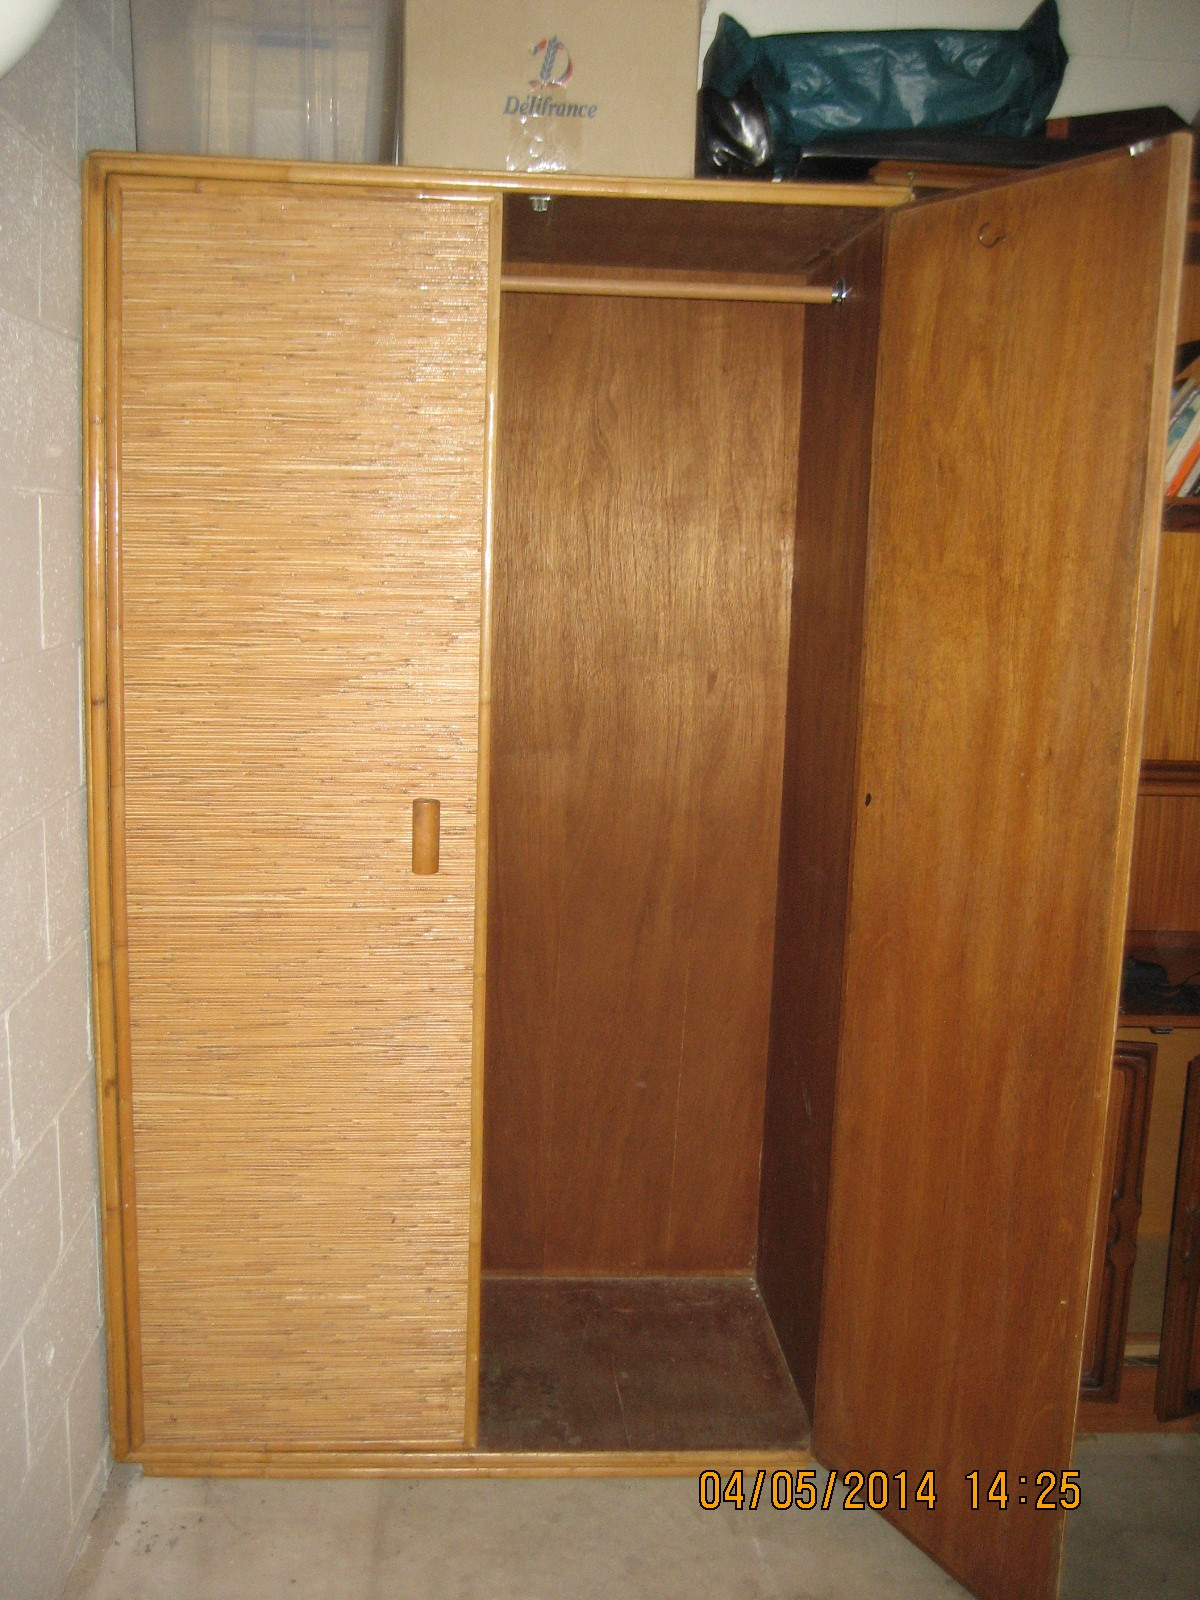 2dr wood wardrobe, large, sturdy, exc condition